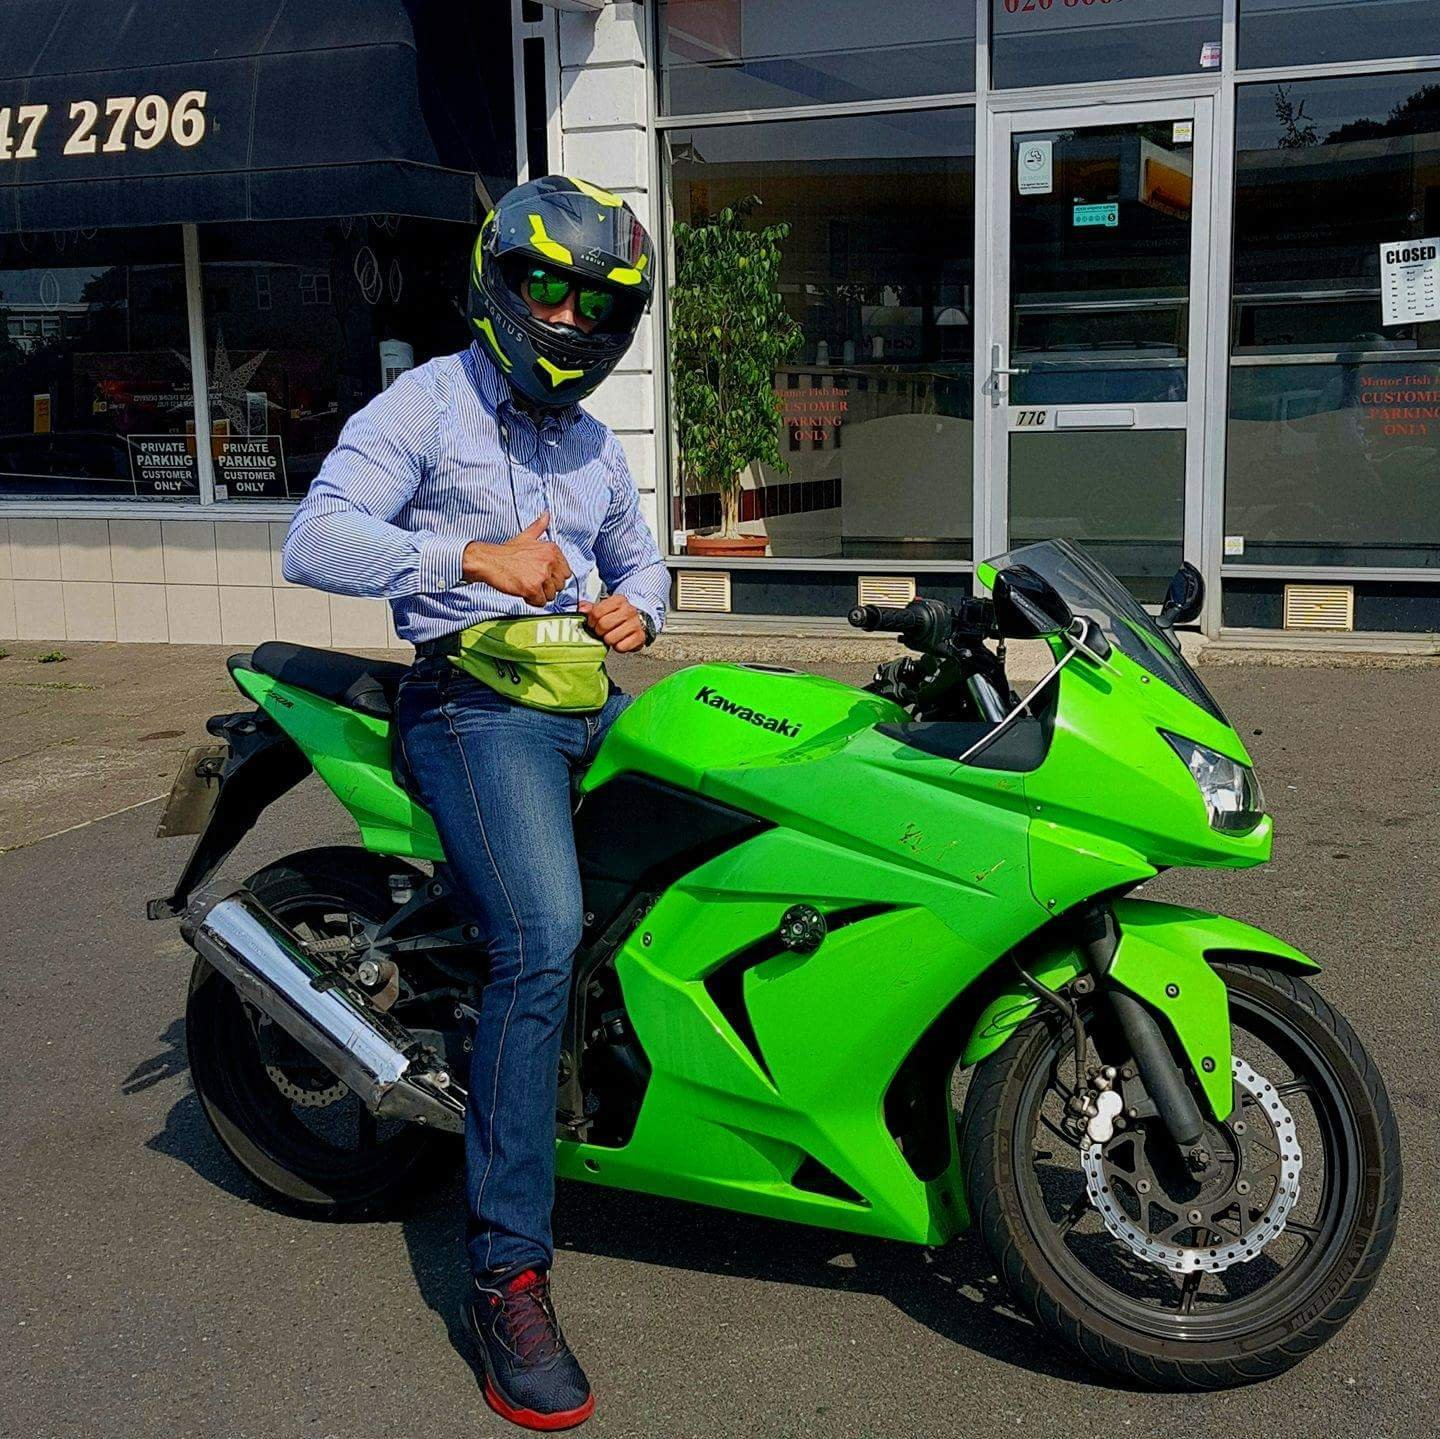 Nick from London – Kawasaki Ninja 250R